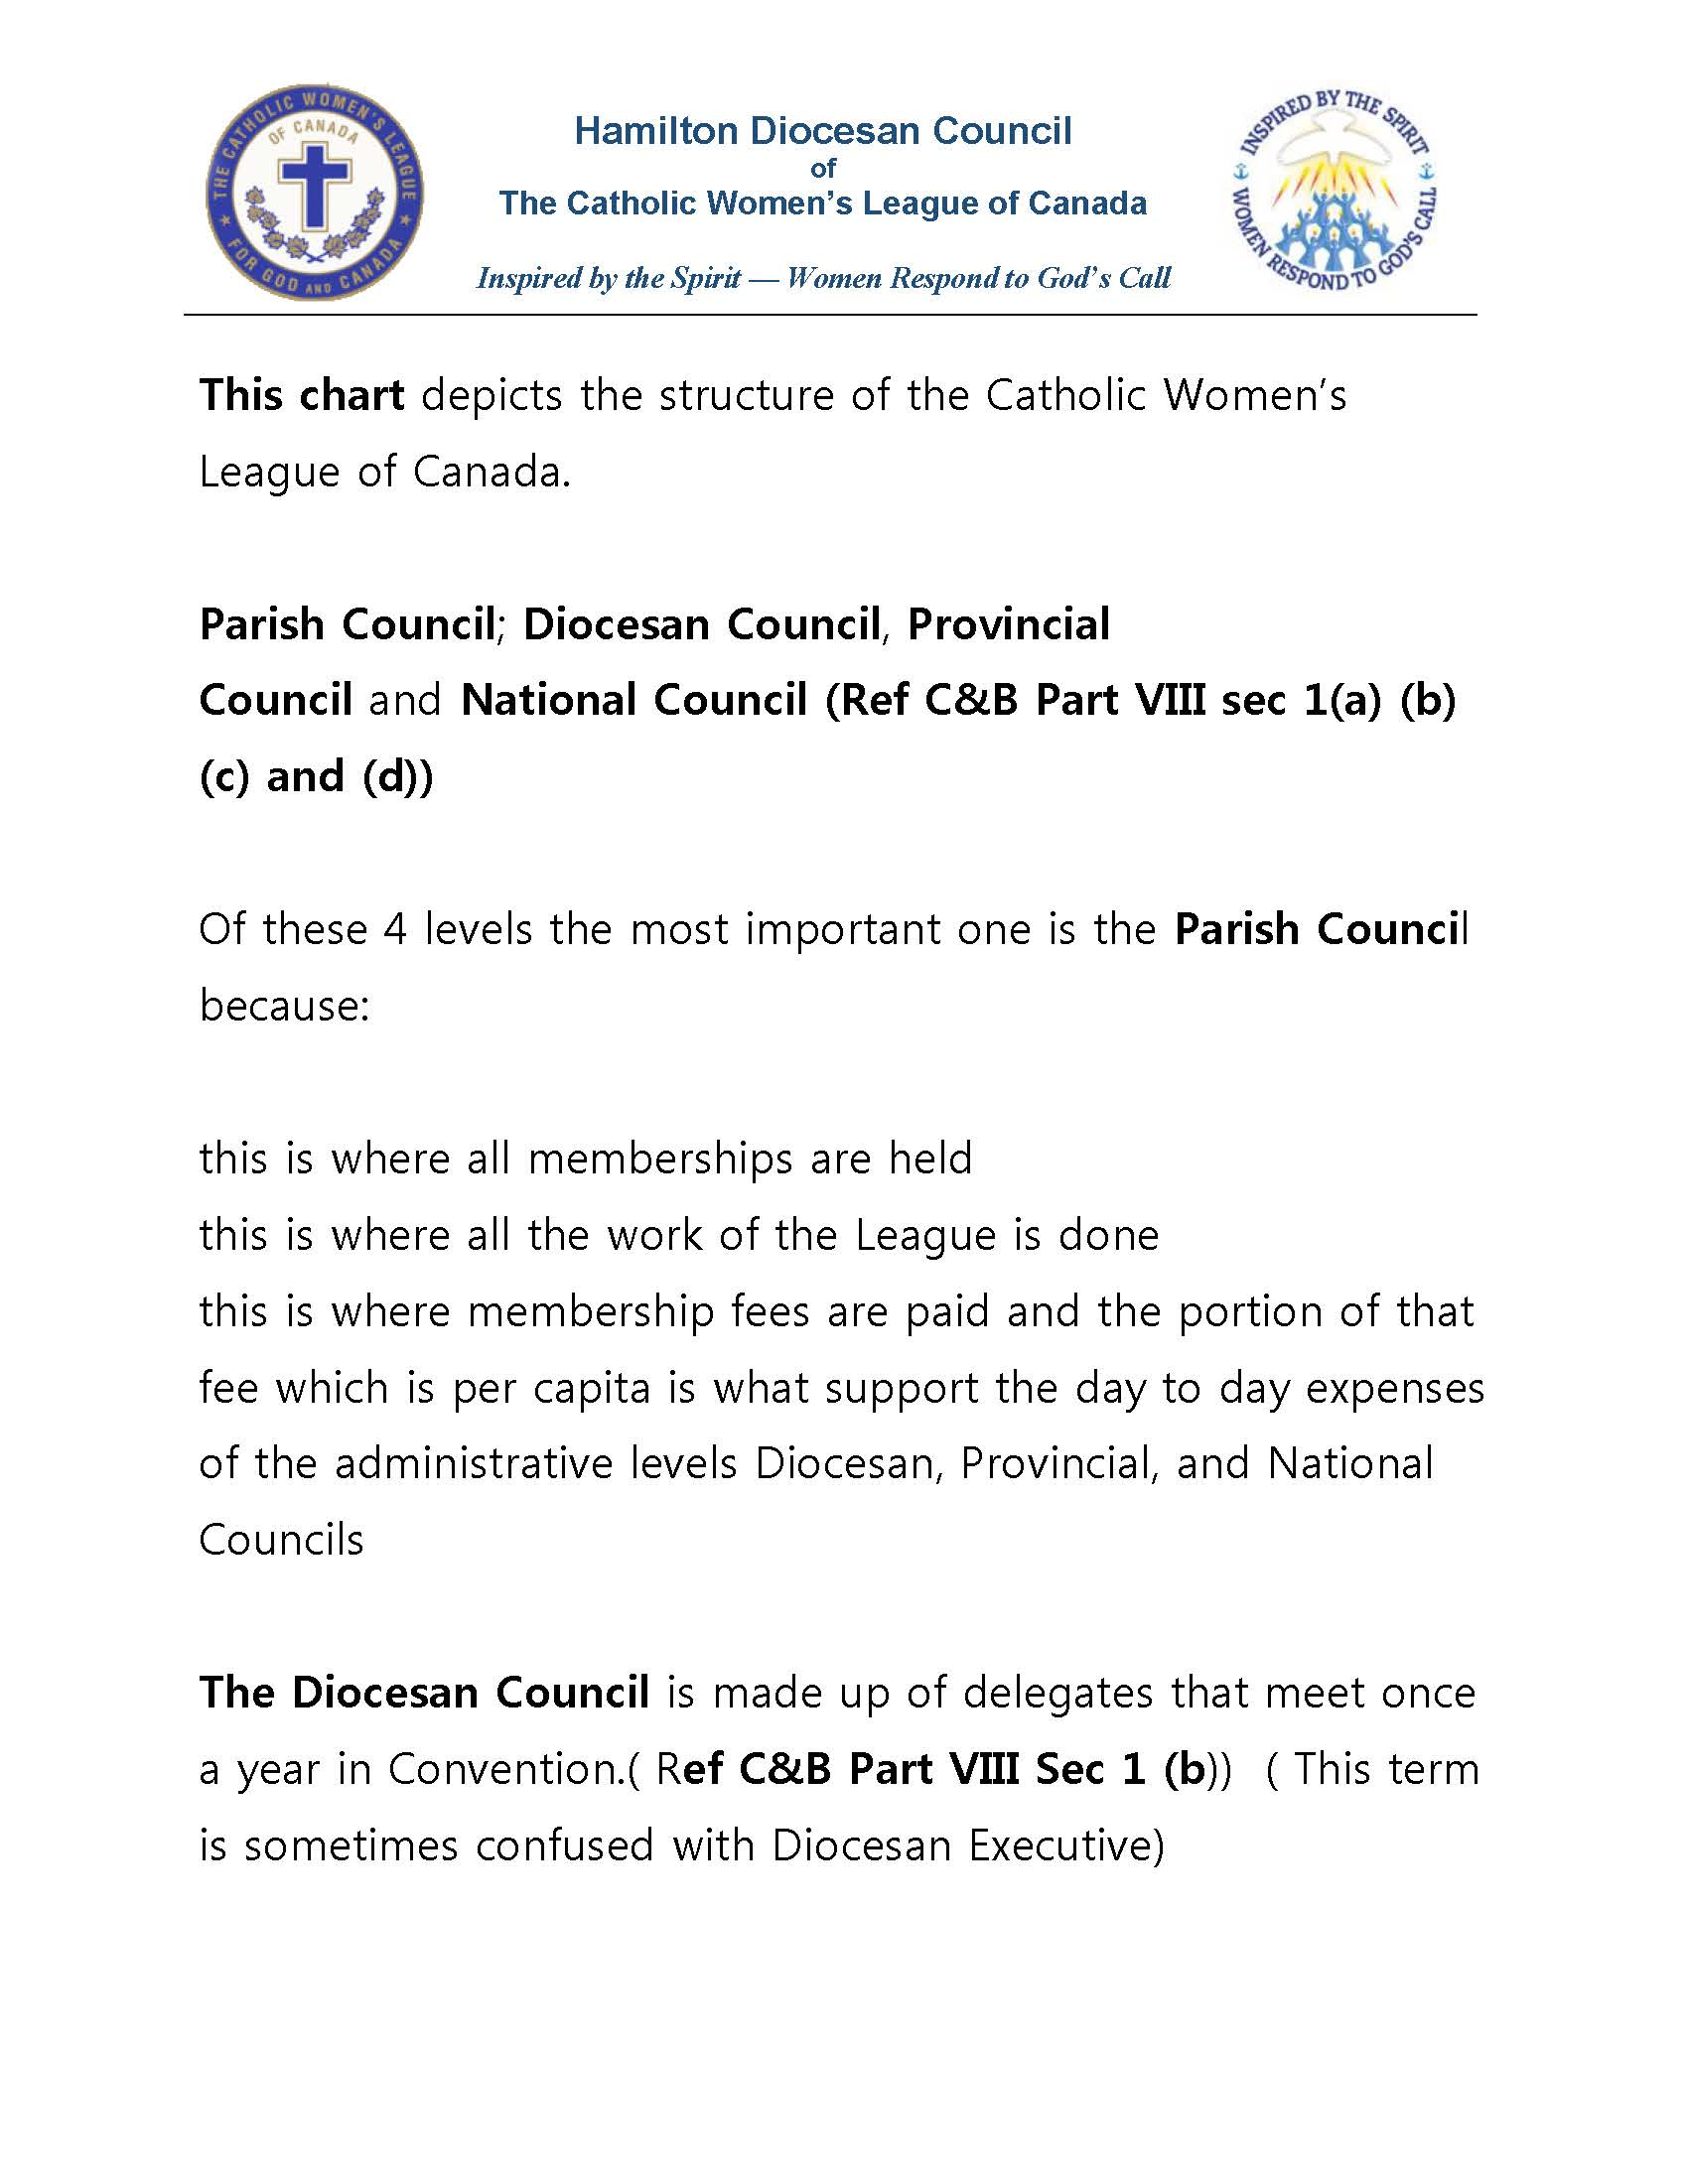 Structure of CWL Diocesan Council (2)_Page_1.jpg